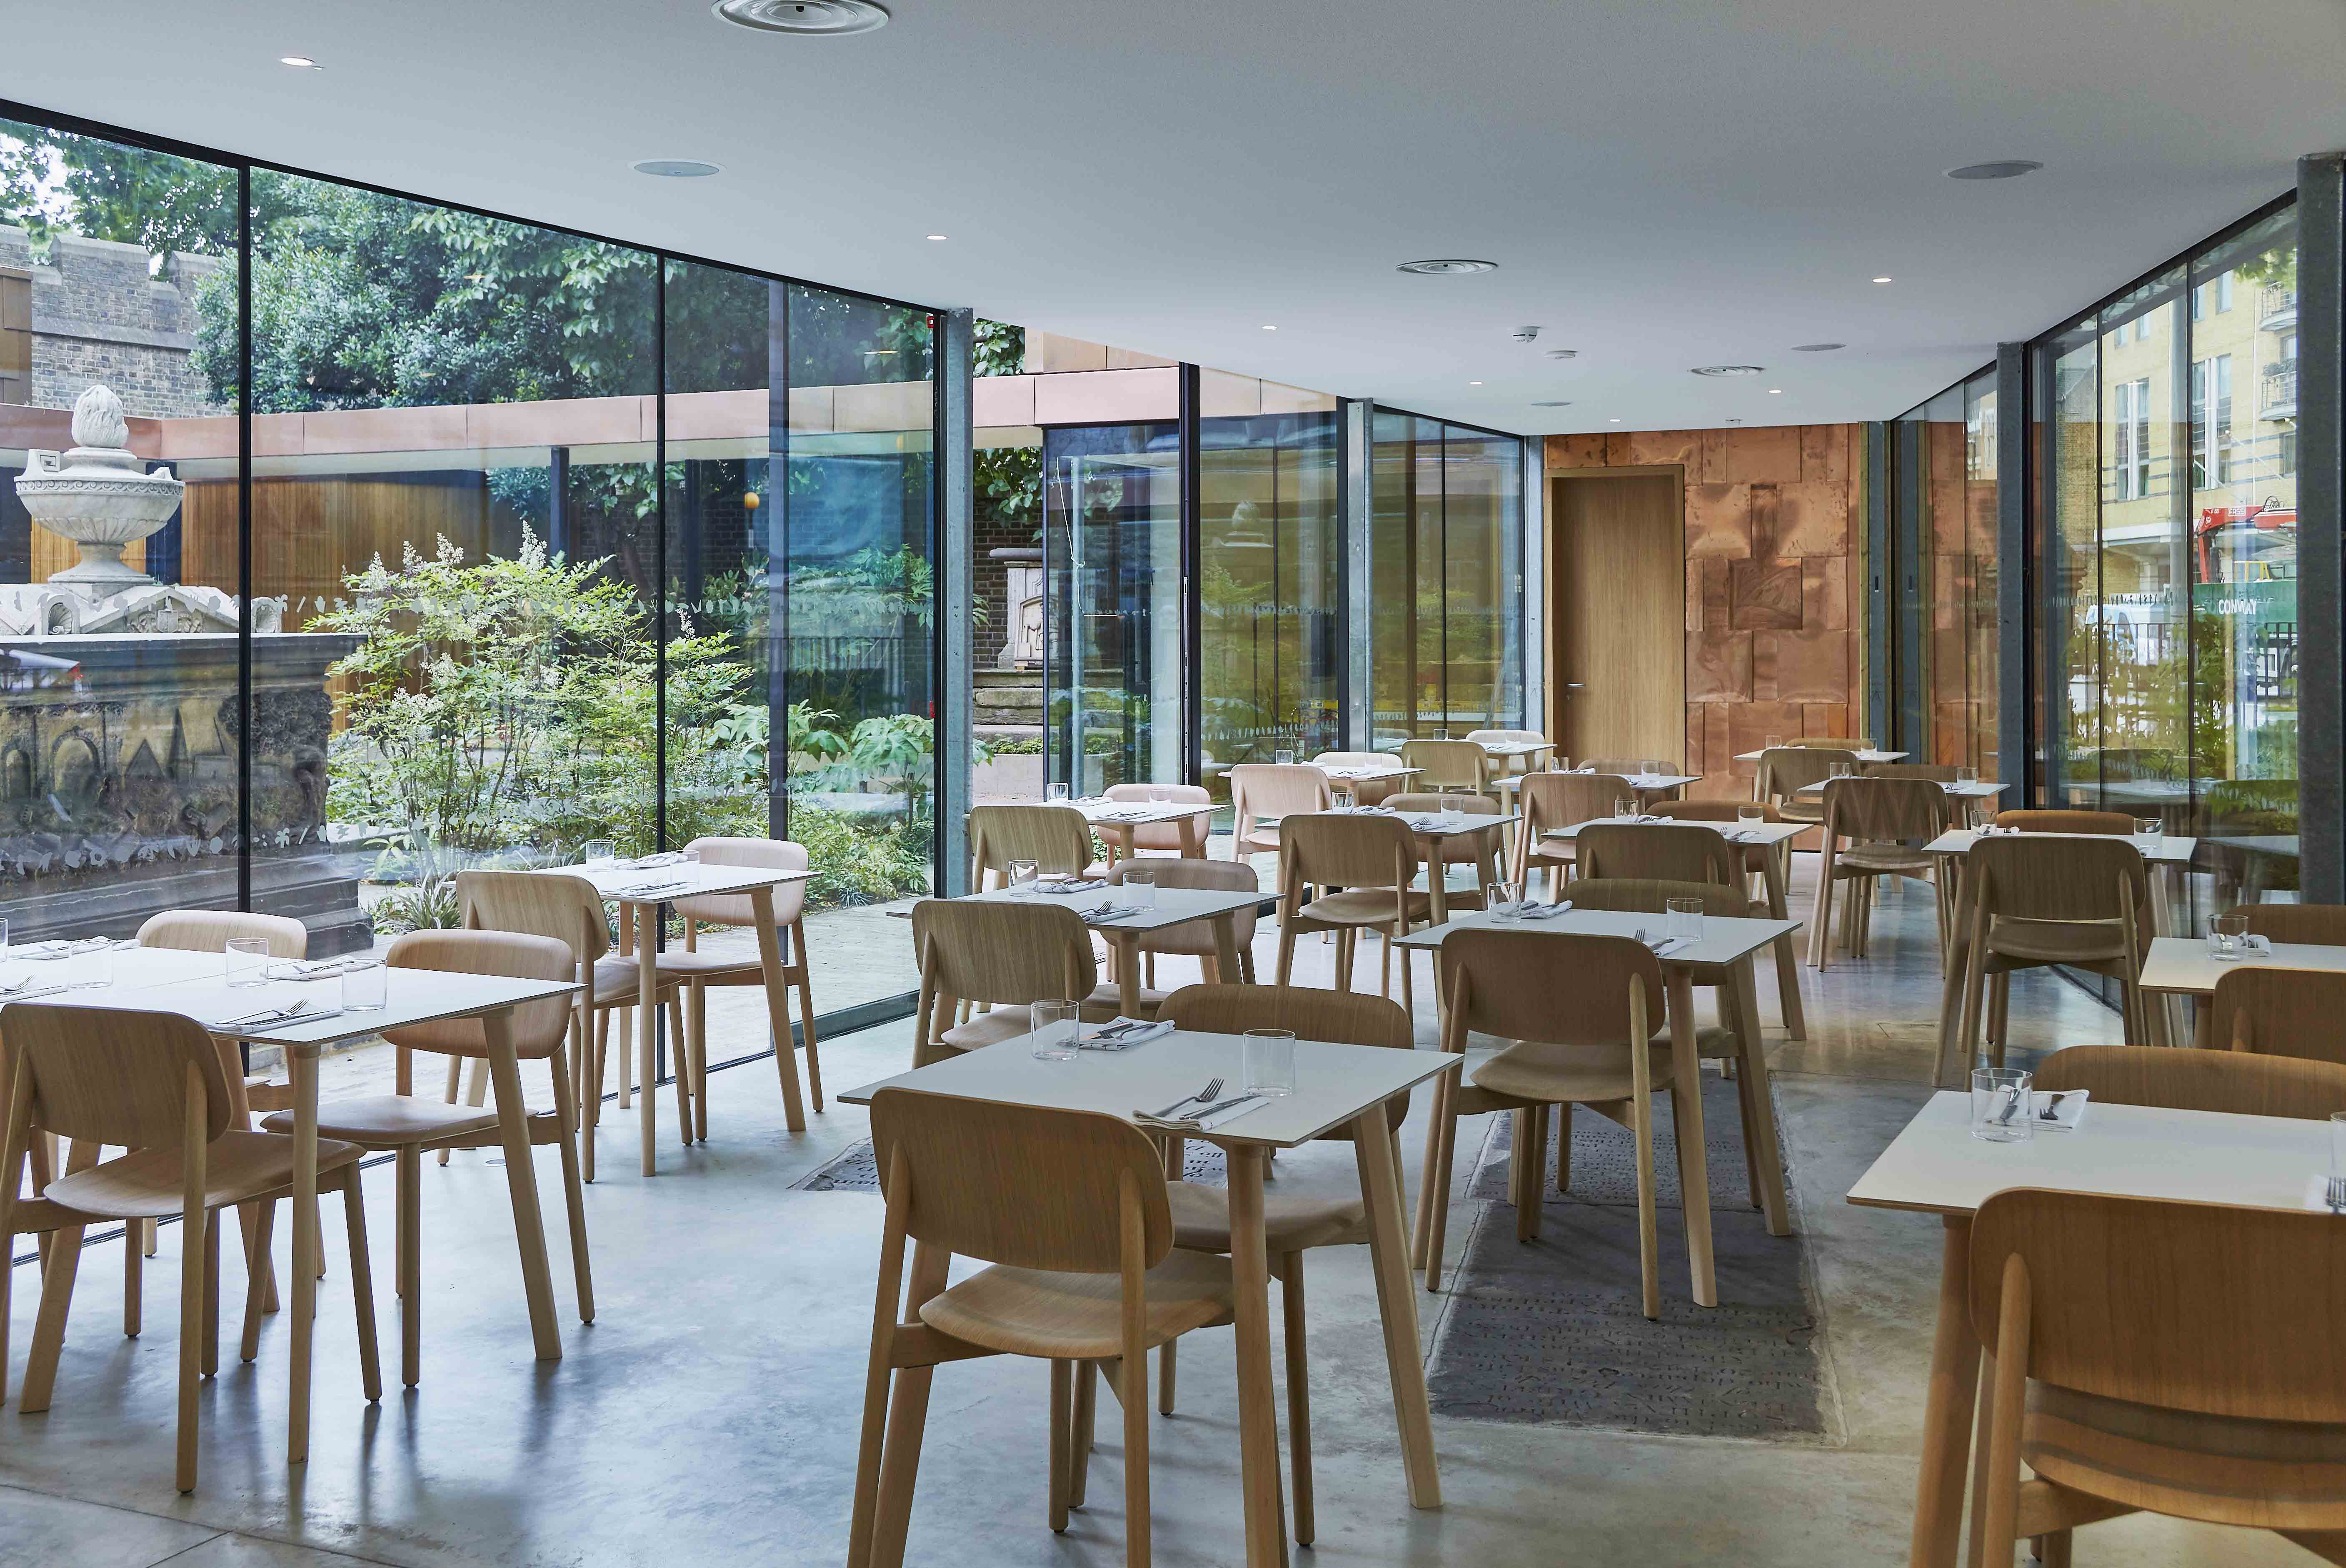 Wooden chairs and tables in a room with glass walls